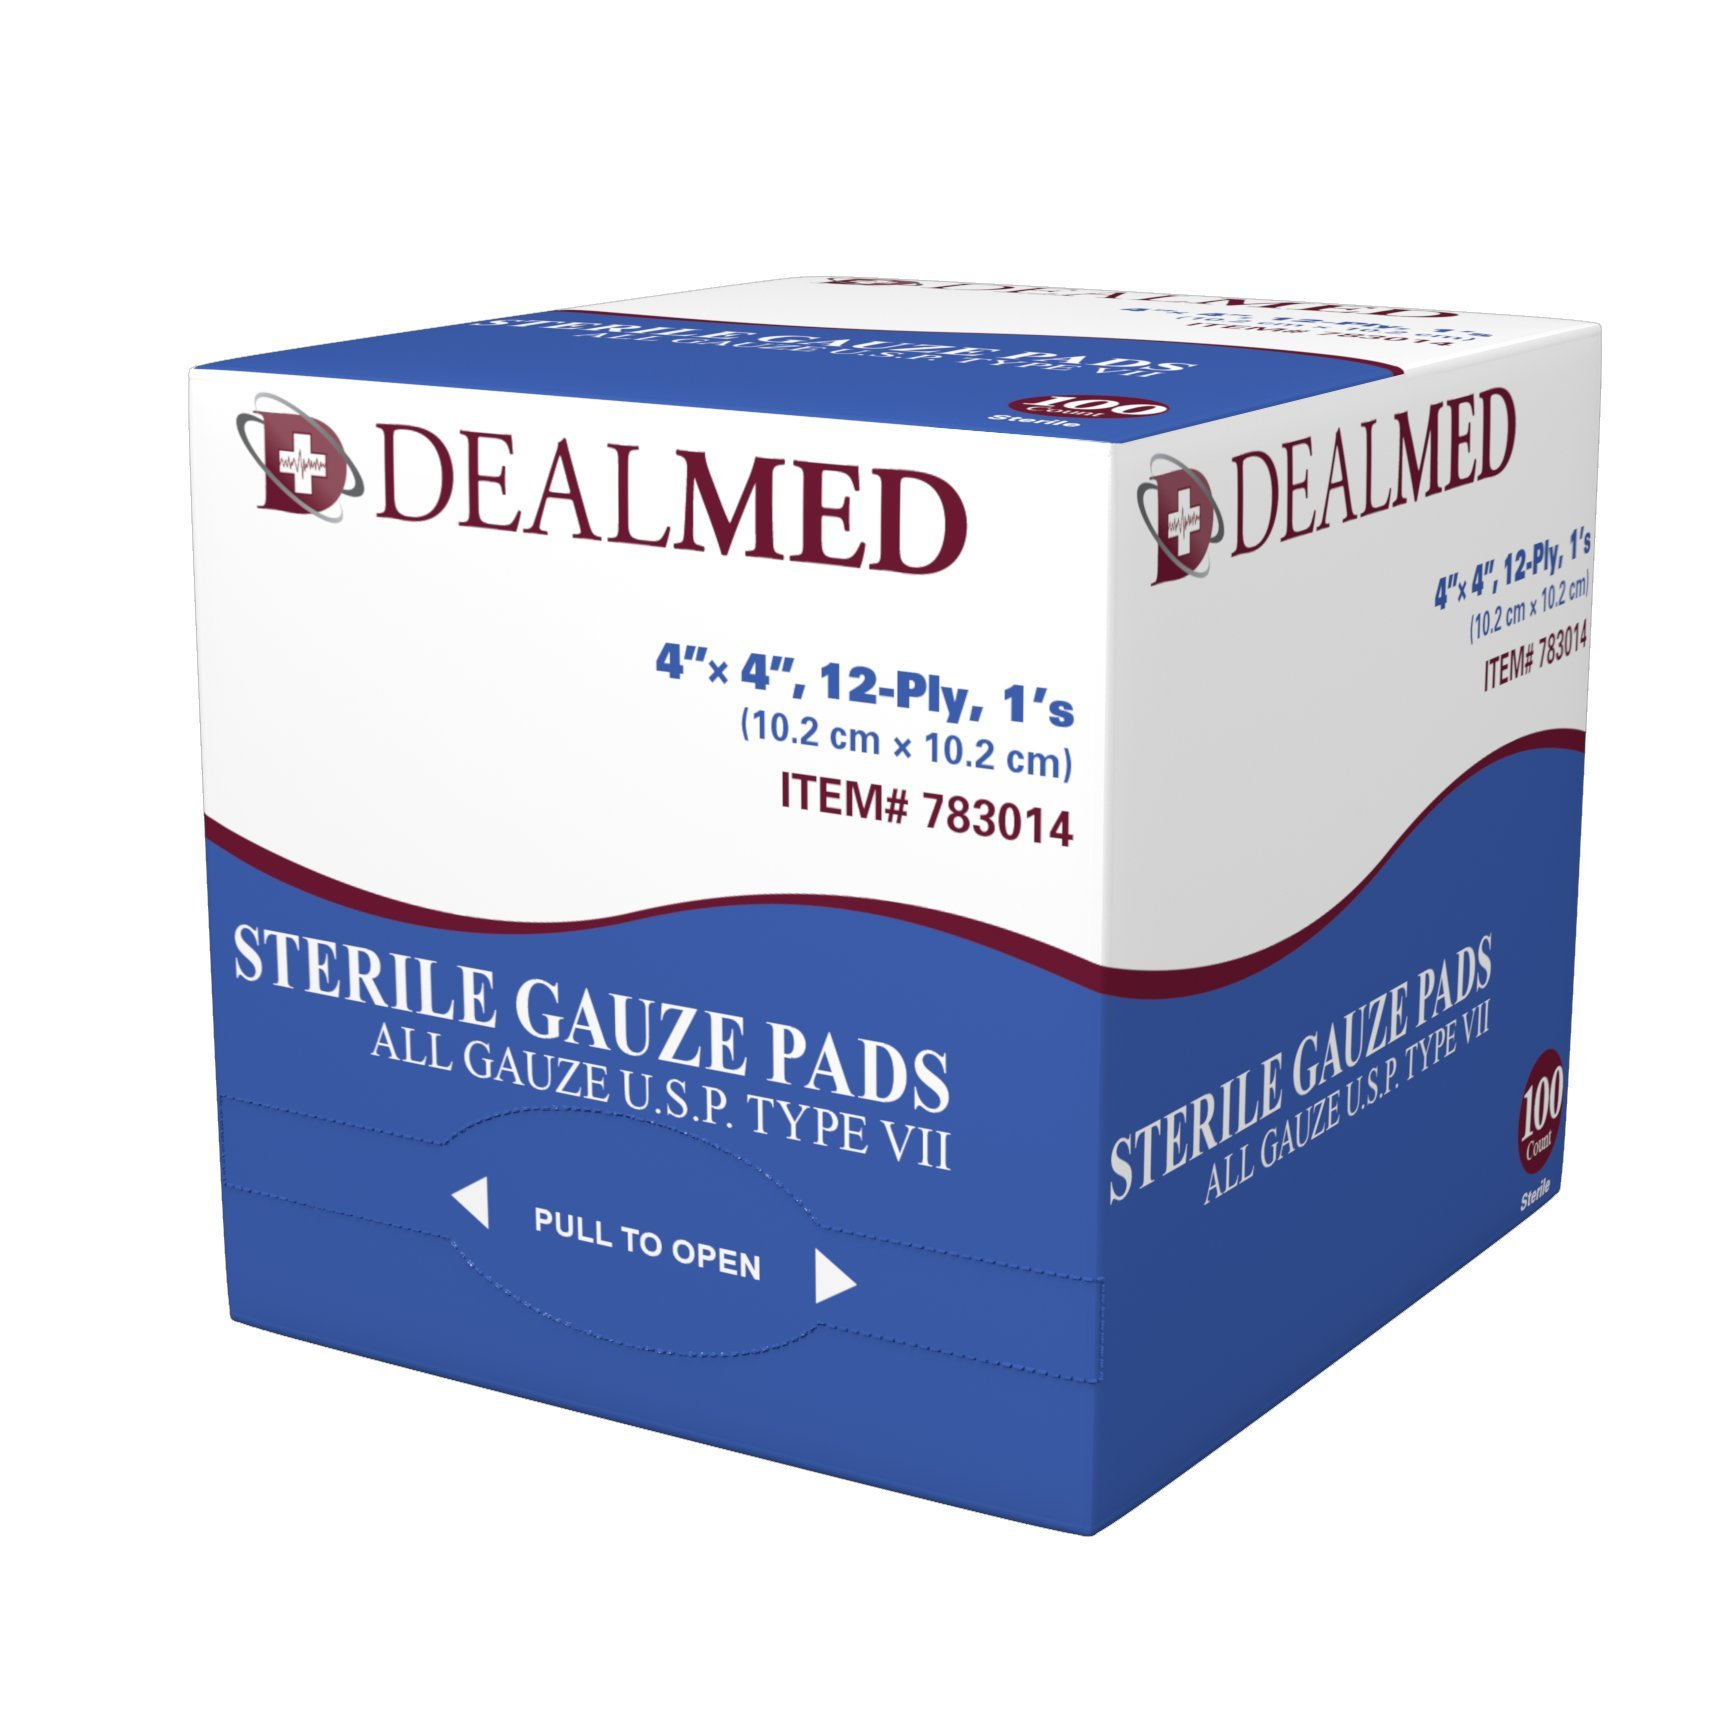 "Dealmed Sterile Gauze Pads, Individually Wrapped Absorbent 4"" x 4"", 100/Box"